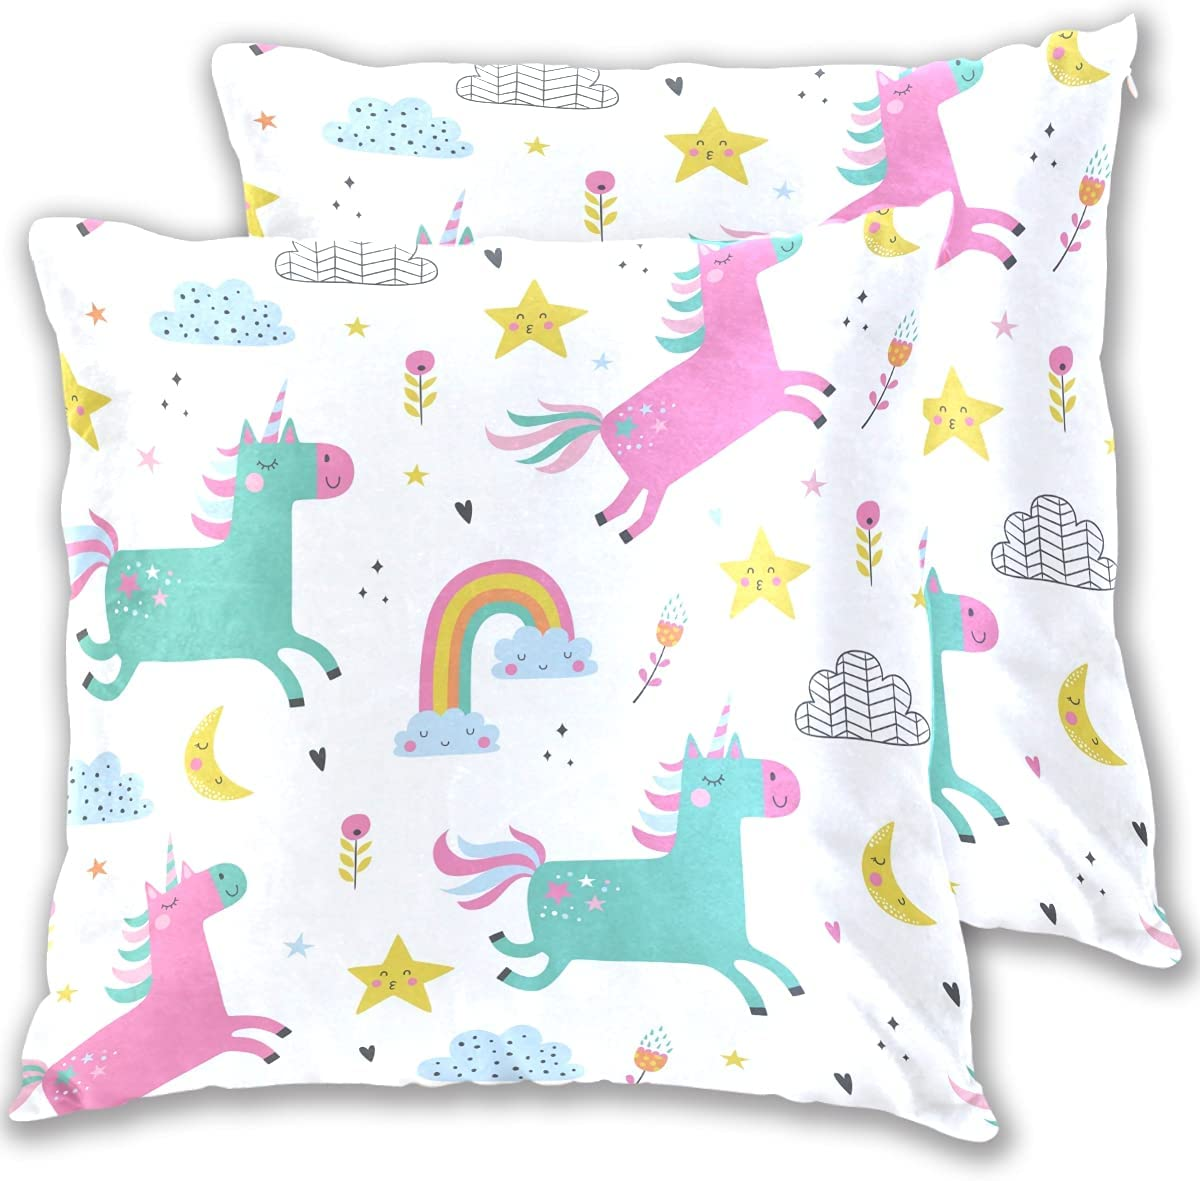 Dzkopi Childish Unicorns Space Fly Kid Special Campaign 2-Piece Pillowcase Ranking TOP18 Covers